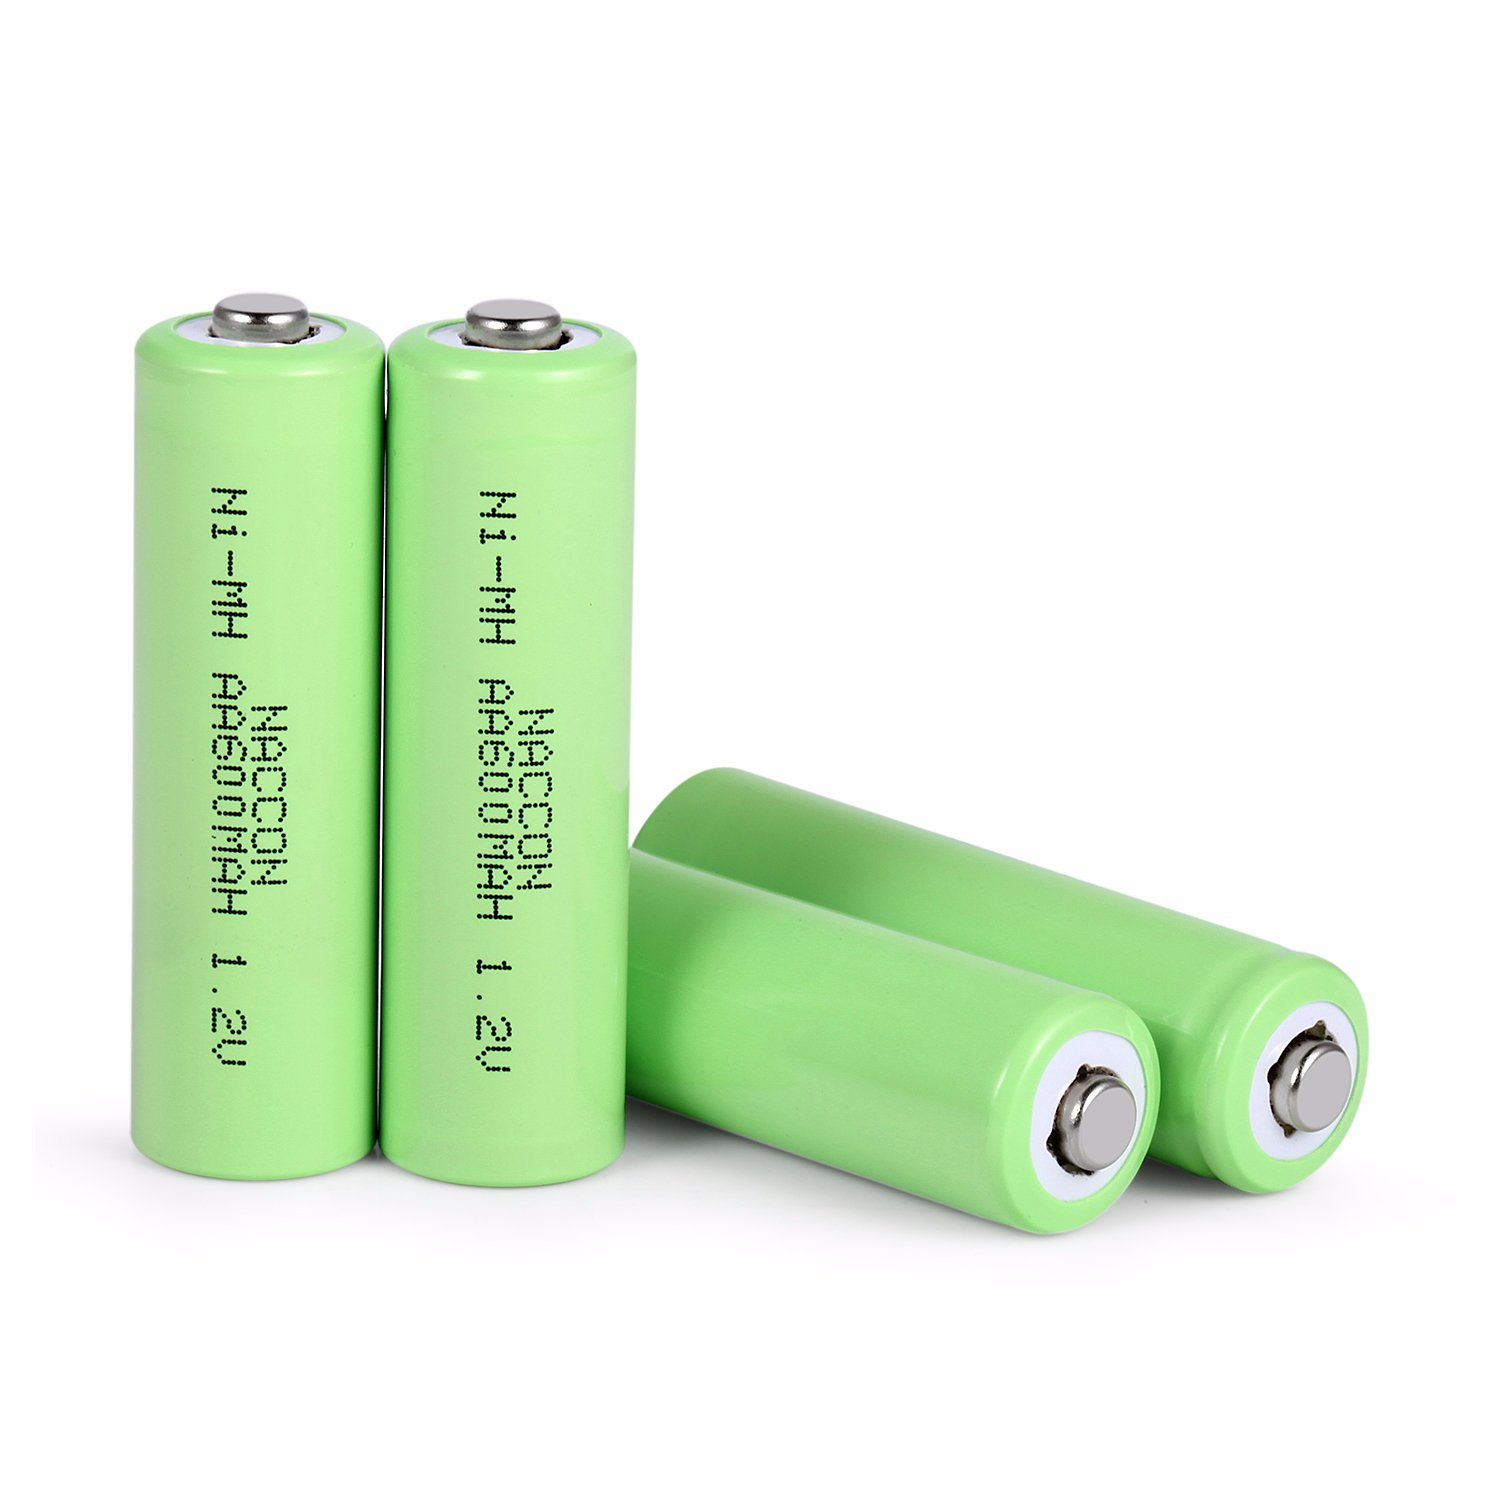 China Ni Mh Rechargeable Battery Of Aa Size 600mah 1 2v China Battery And Rechargeable Battery Price